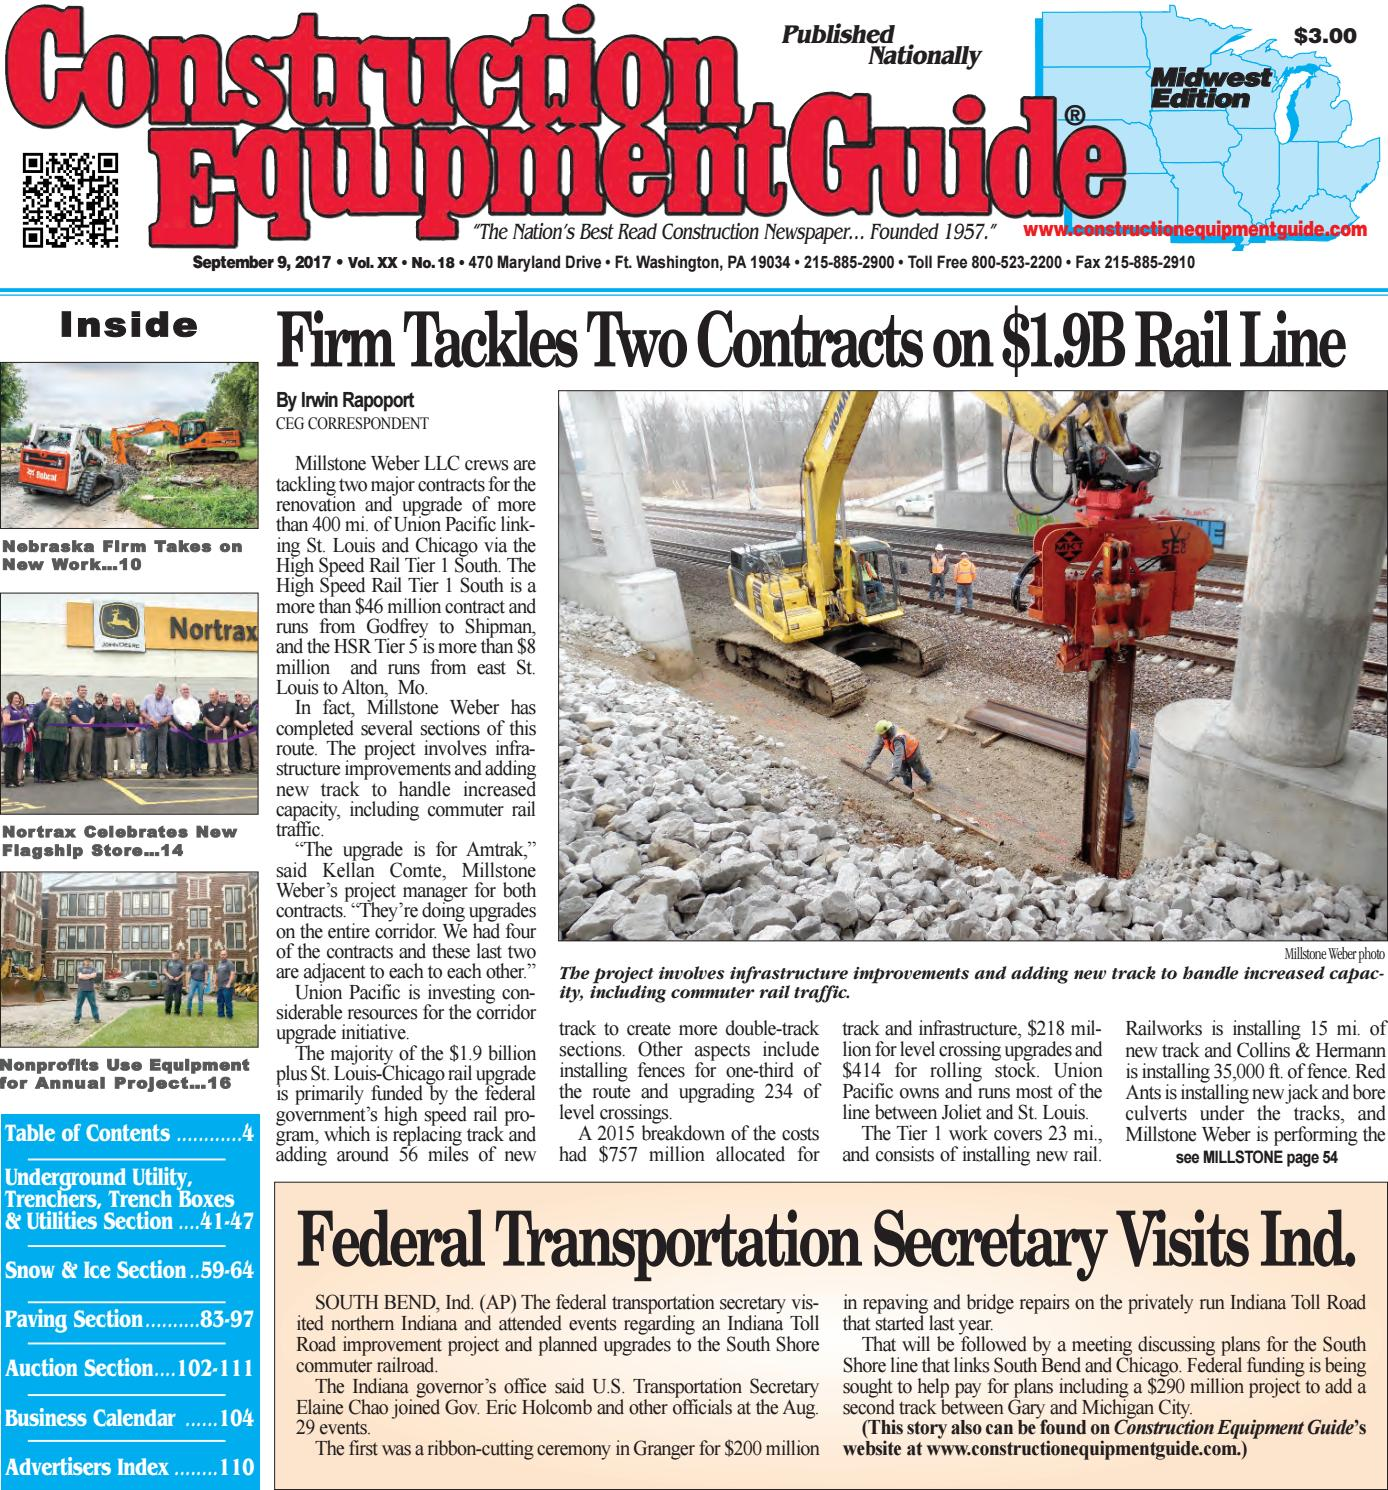 Midwest 18 September 9, 2017 by Construction Equipment Guide